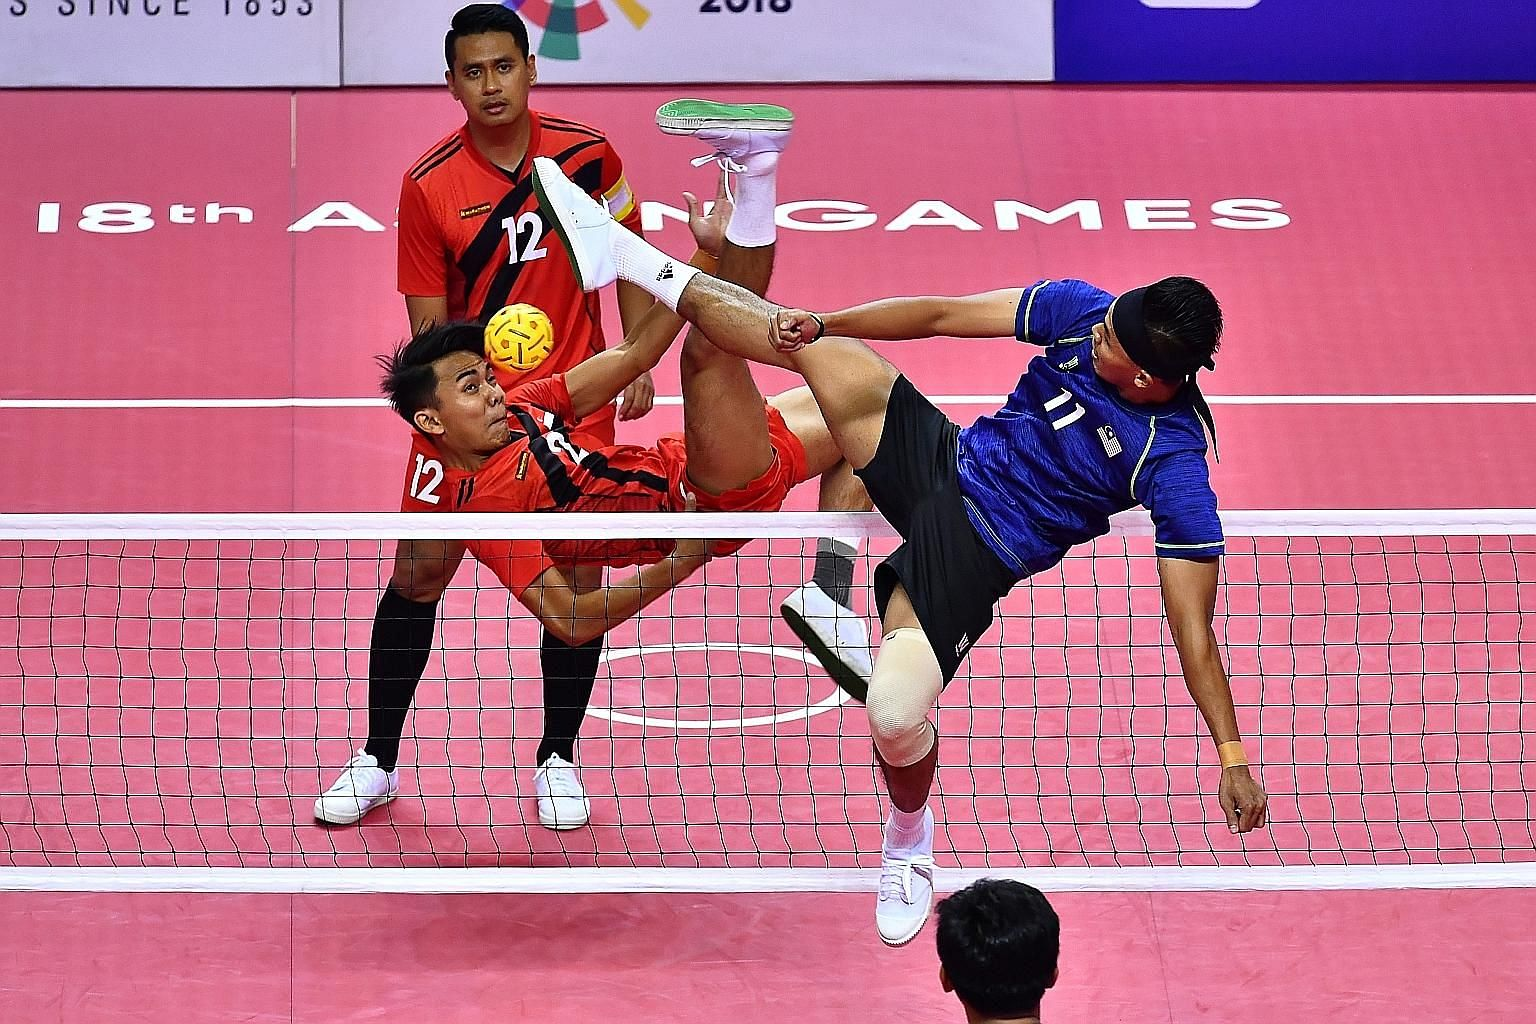 Singapore's Amran Mohamad Farhan (No. 12) and Muhammad A'fif Safiee (No. 2) in yesterday's regu semi-final, which Malaysia won 21-8, 21-8. The Republic shared the bronze medal with South Korea, the other losing semi-finalists.